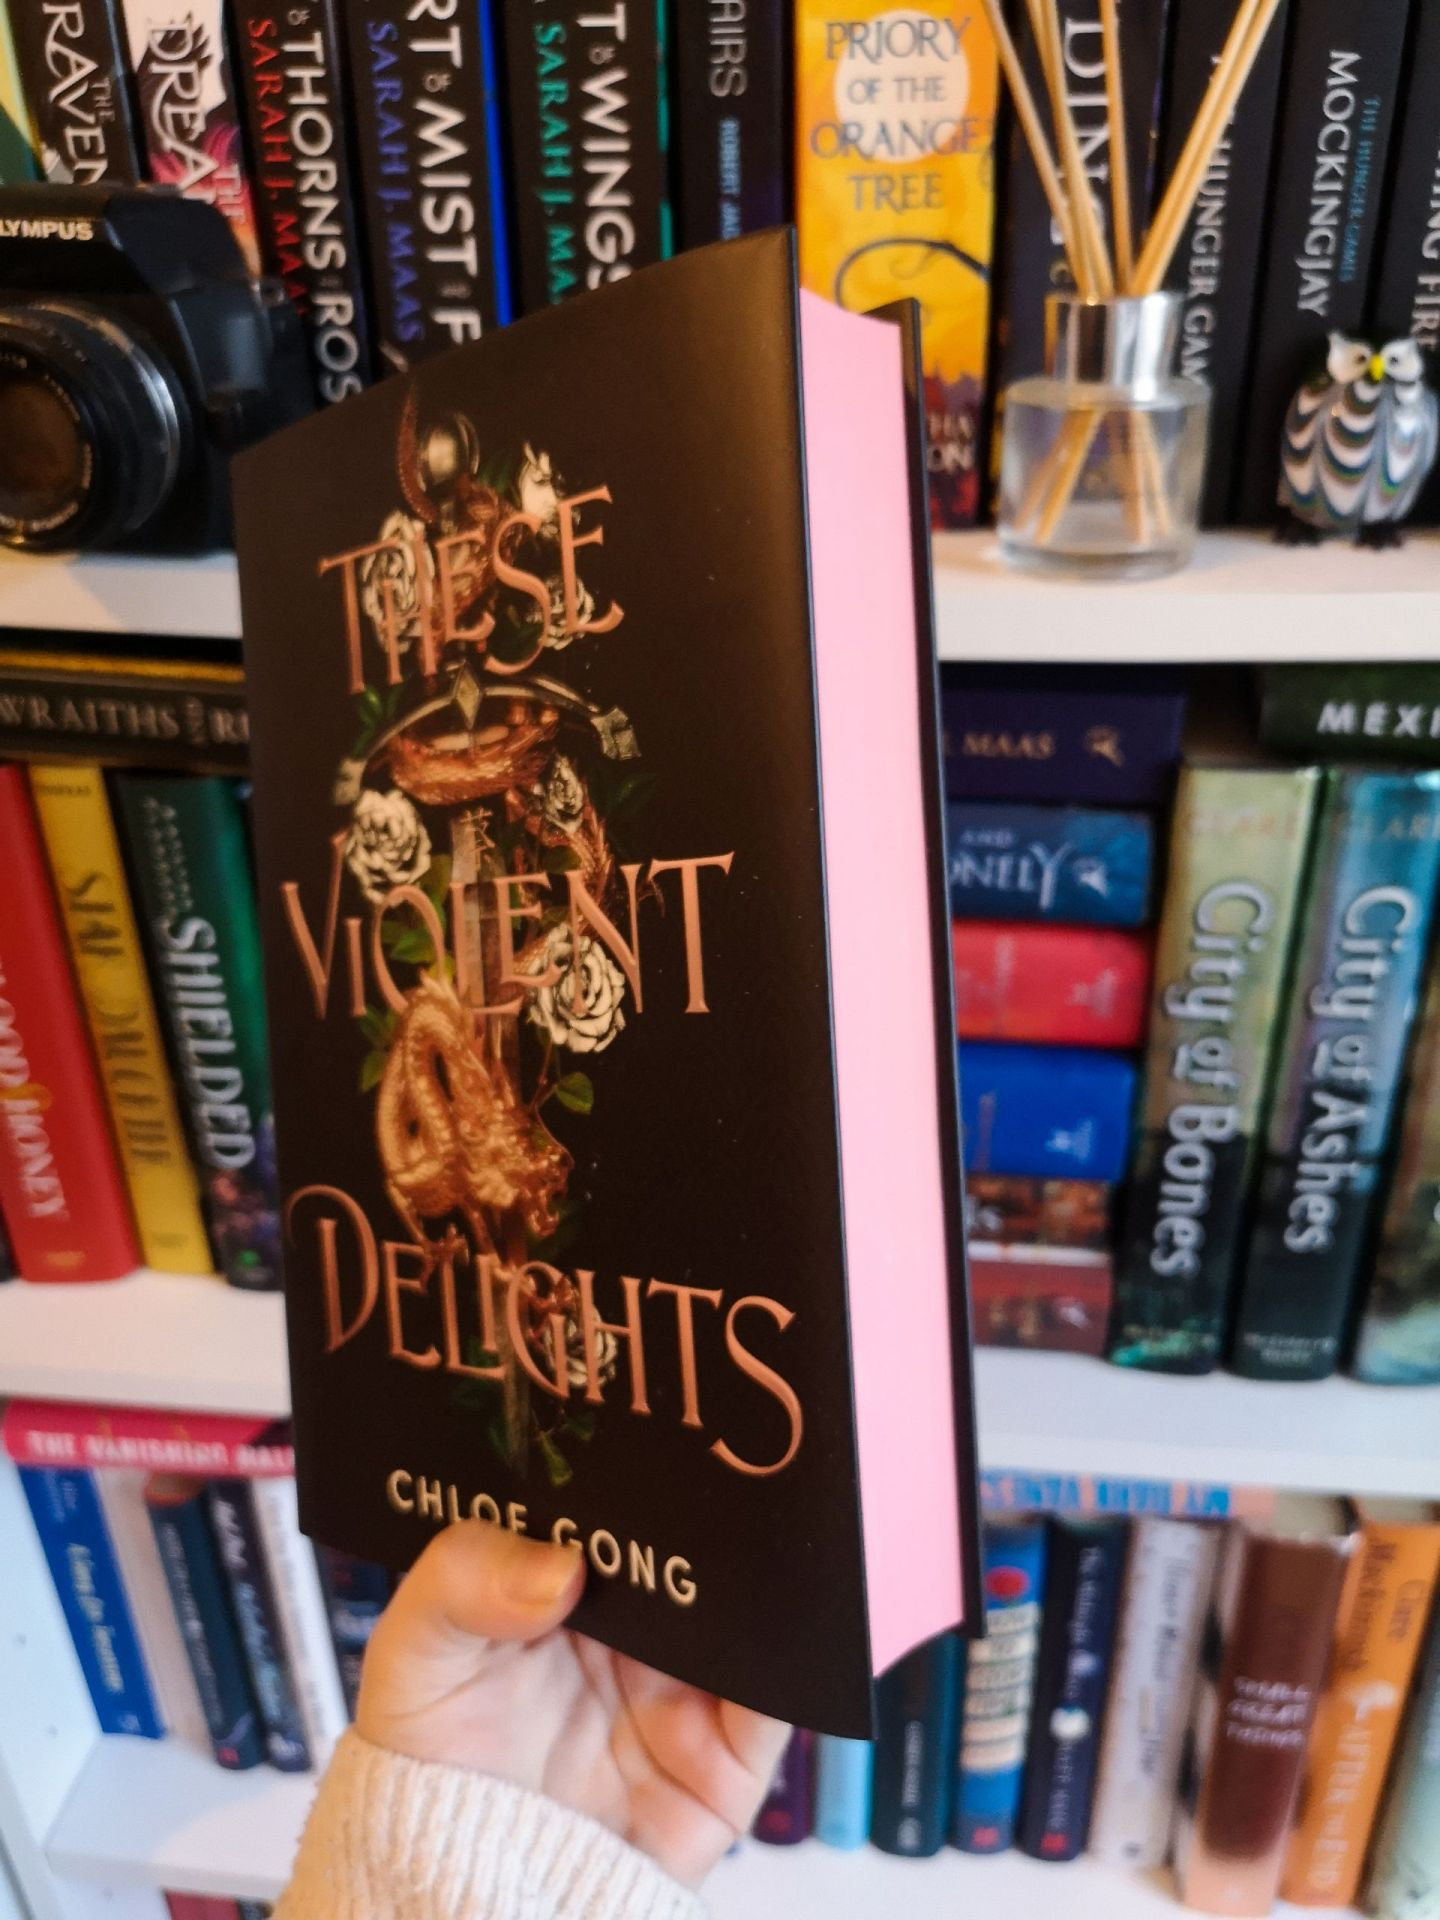 These Violent Delights by Chloe Gong Book Review